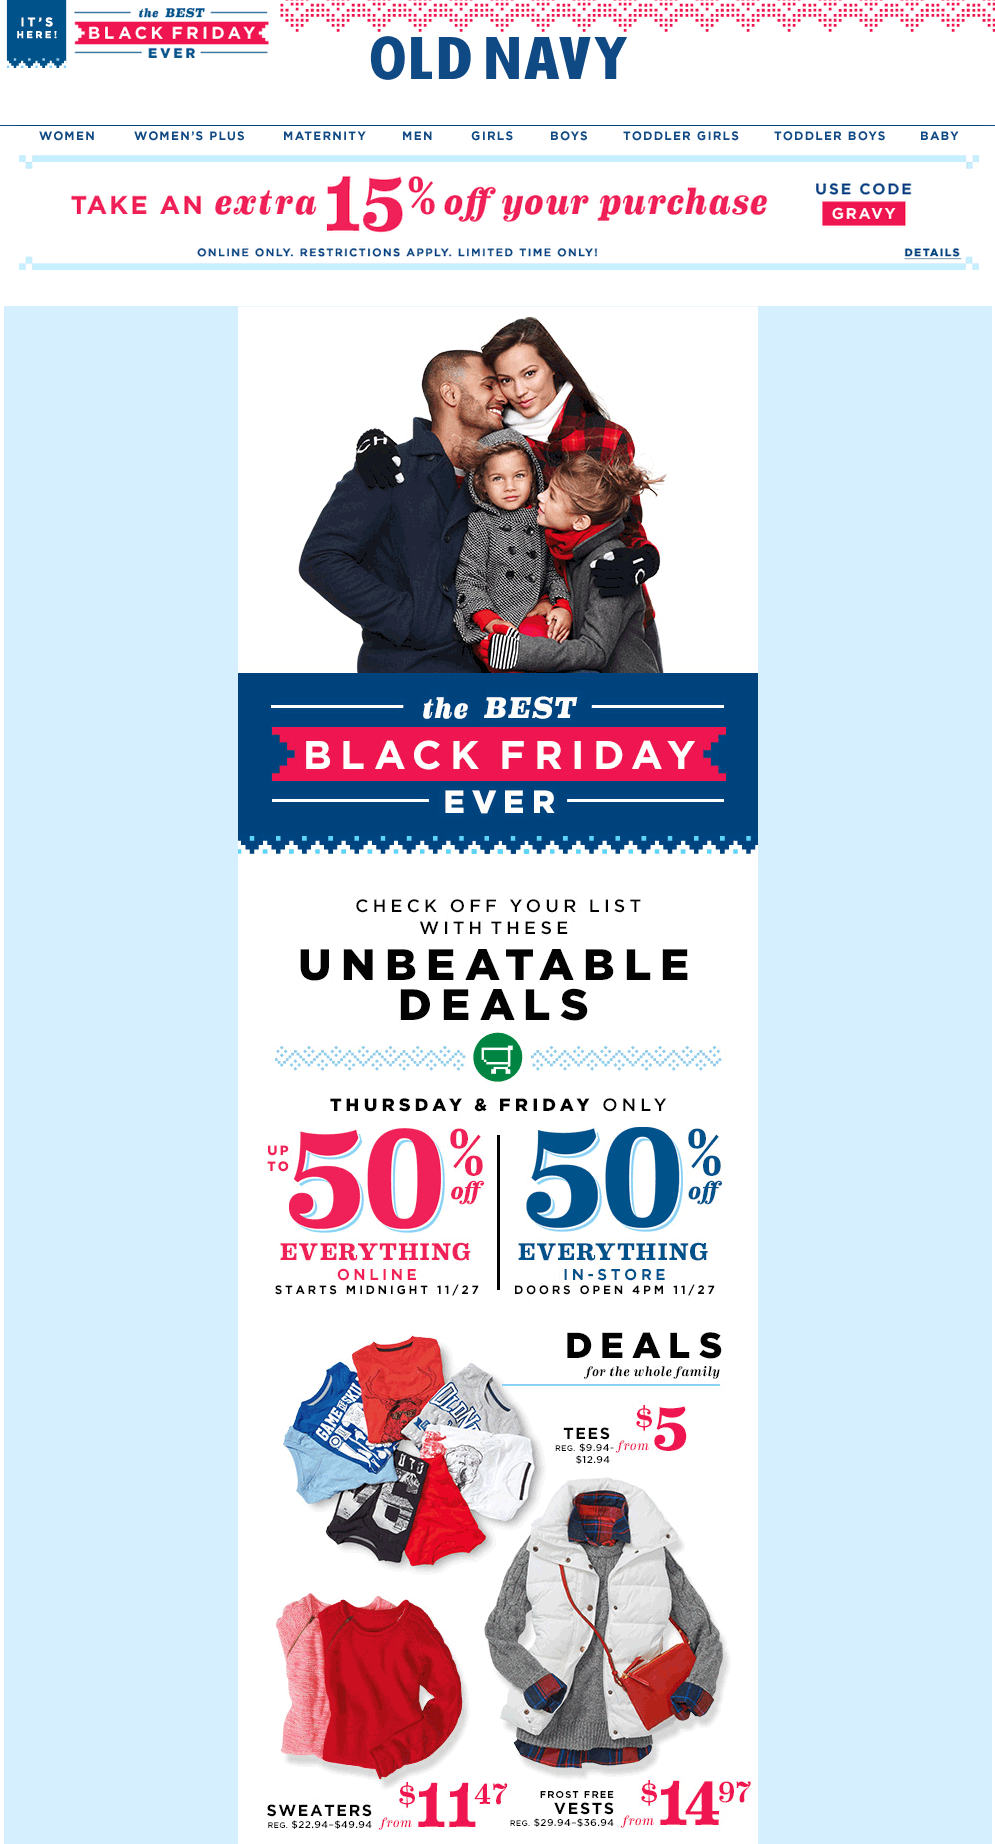 Old Navy Coupon January 2017 50% off everything at Old Navy, ditto online + 15% via promo code GRAVY